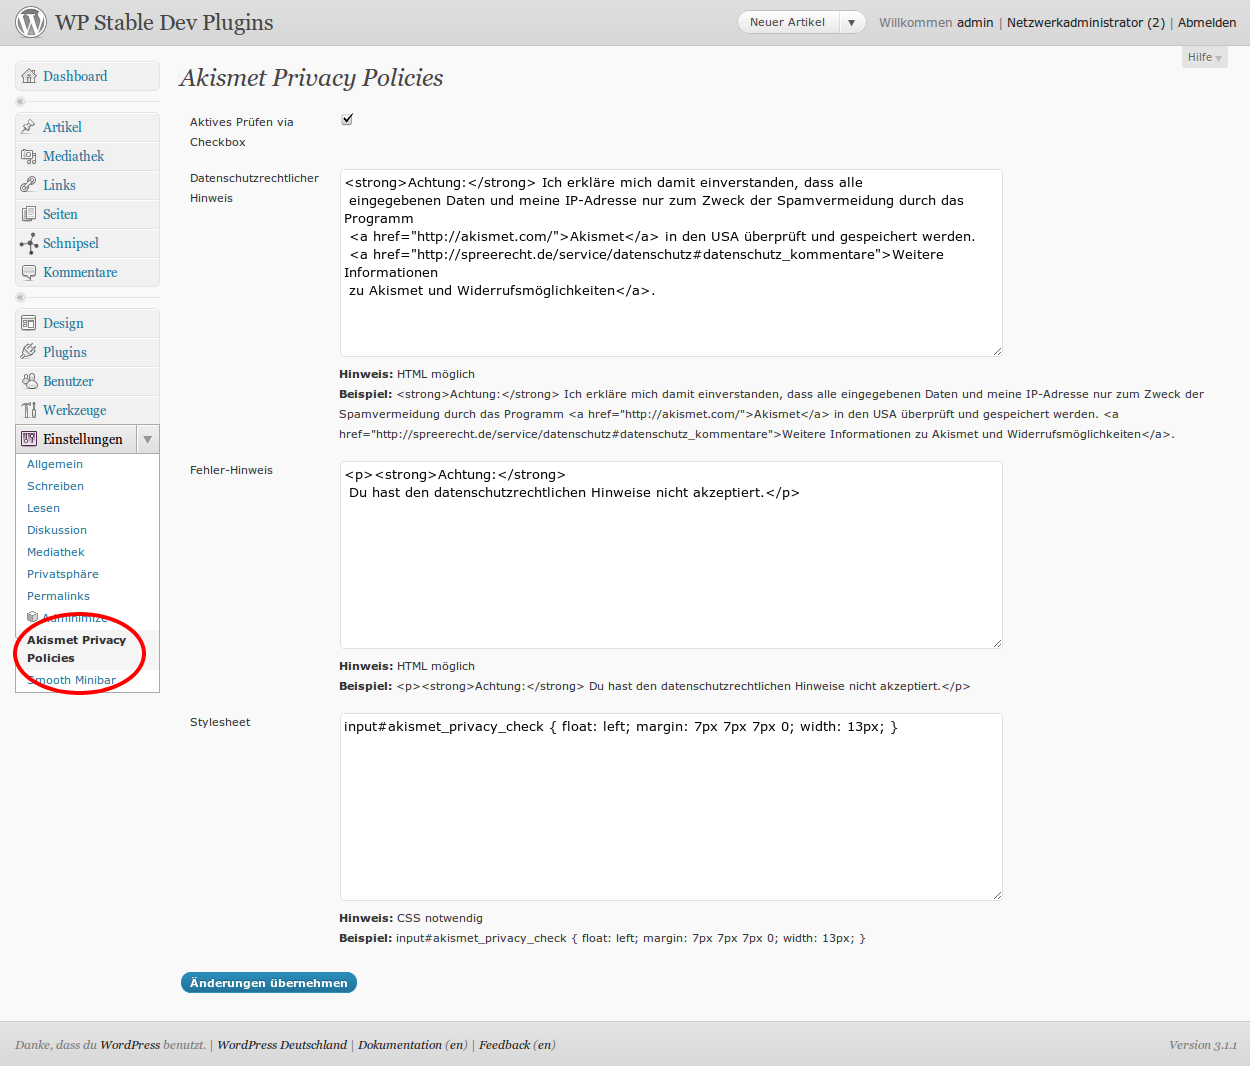 akismet-privacy-policies screenshot 2